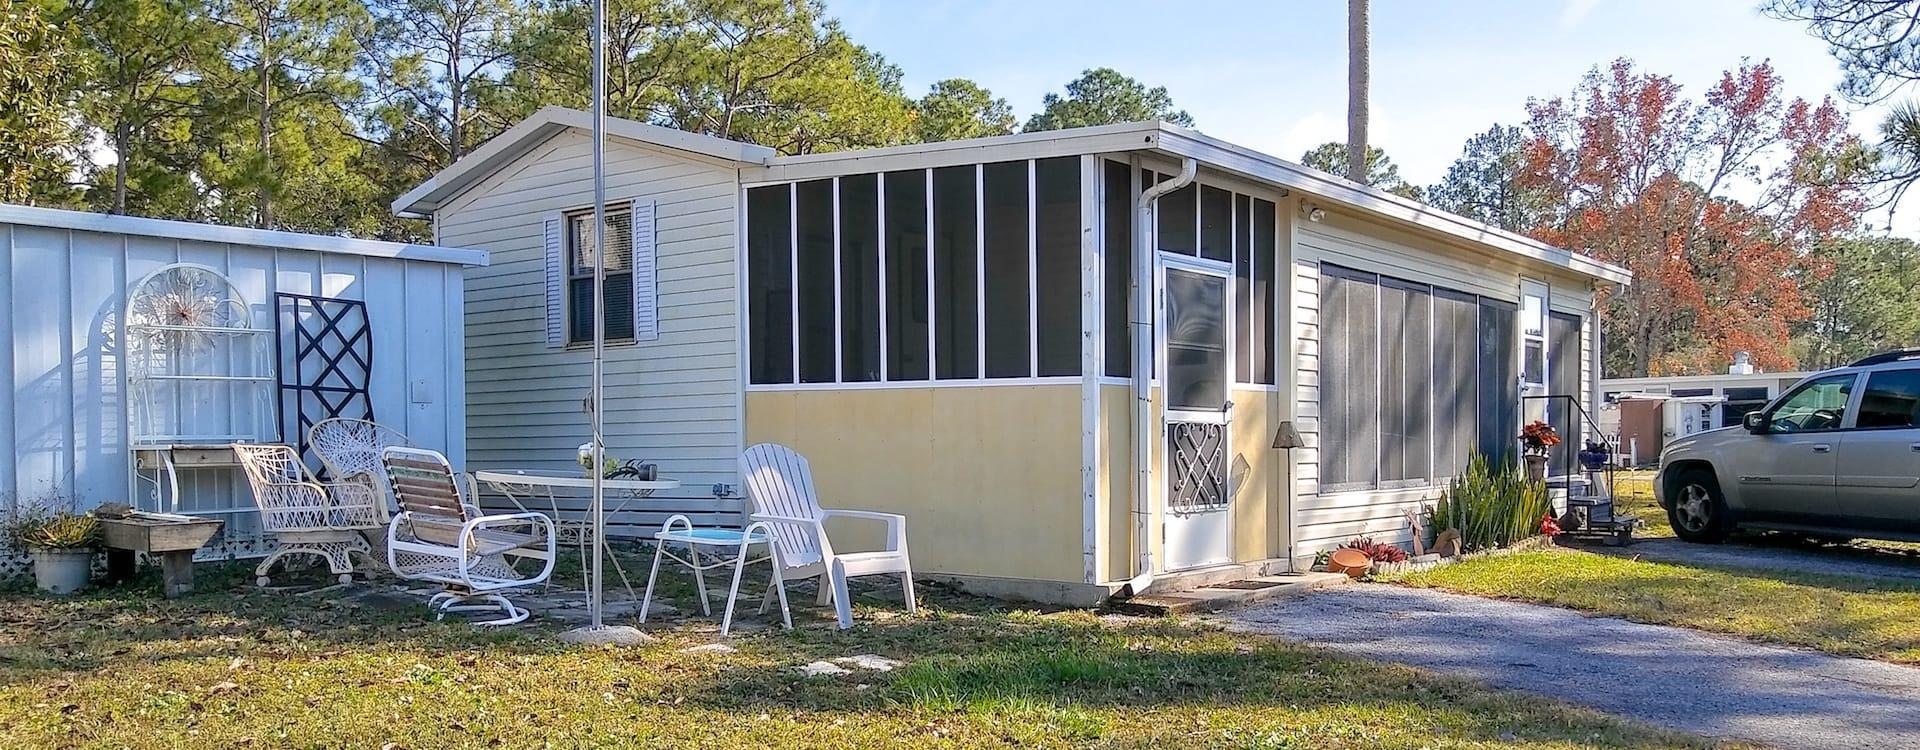 Mobile Home For Sale | Port Richey, FL | Oak Springs RV Resort #201